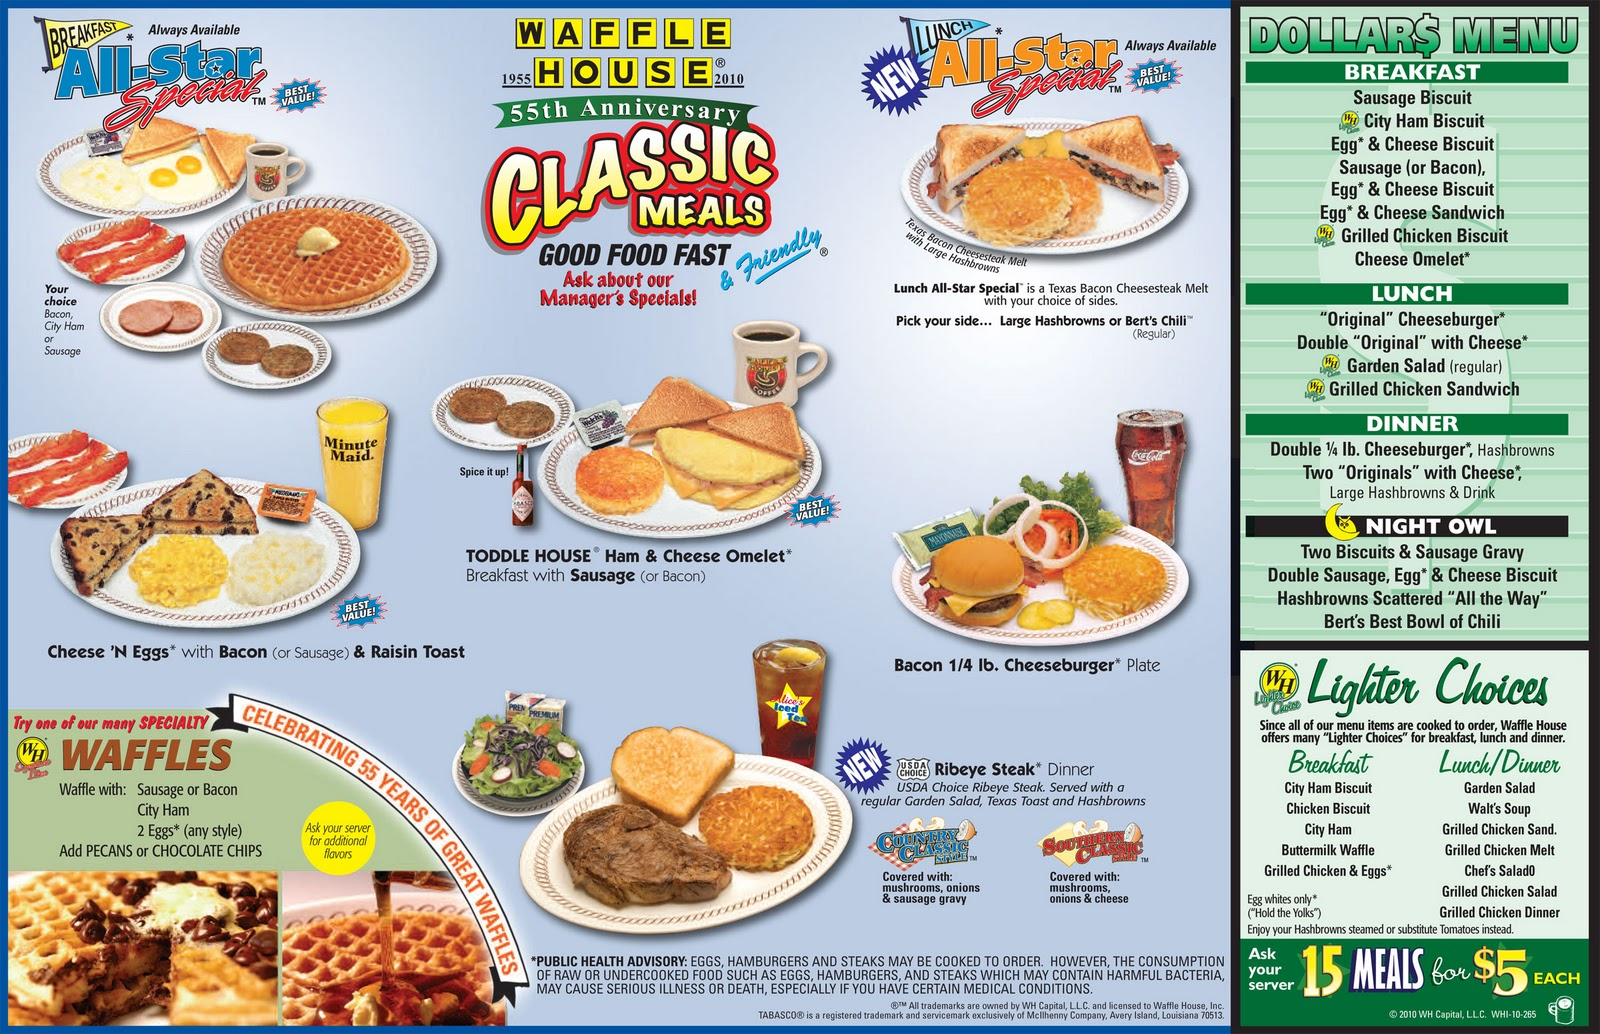 WAFFLE HOUSE DINER MENU CLICK TO ENLARGE